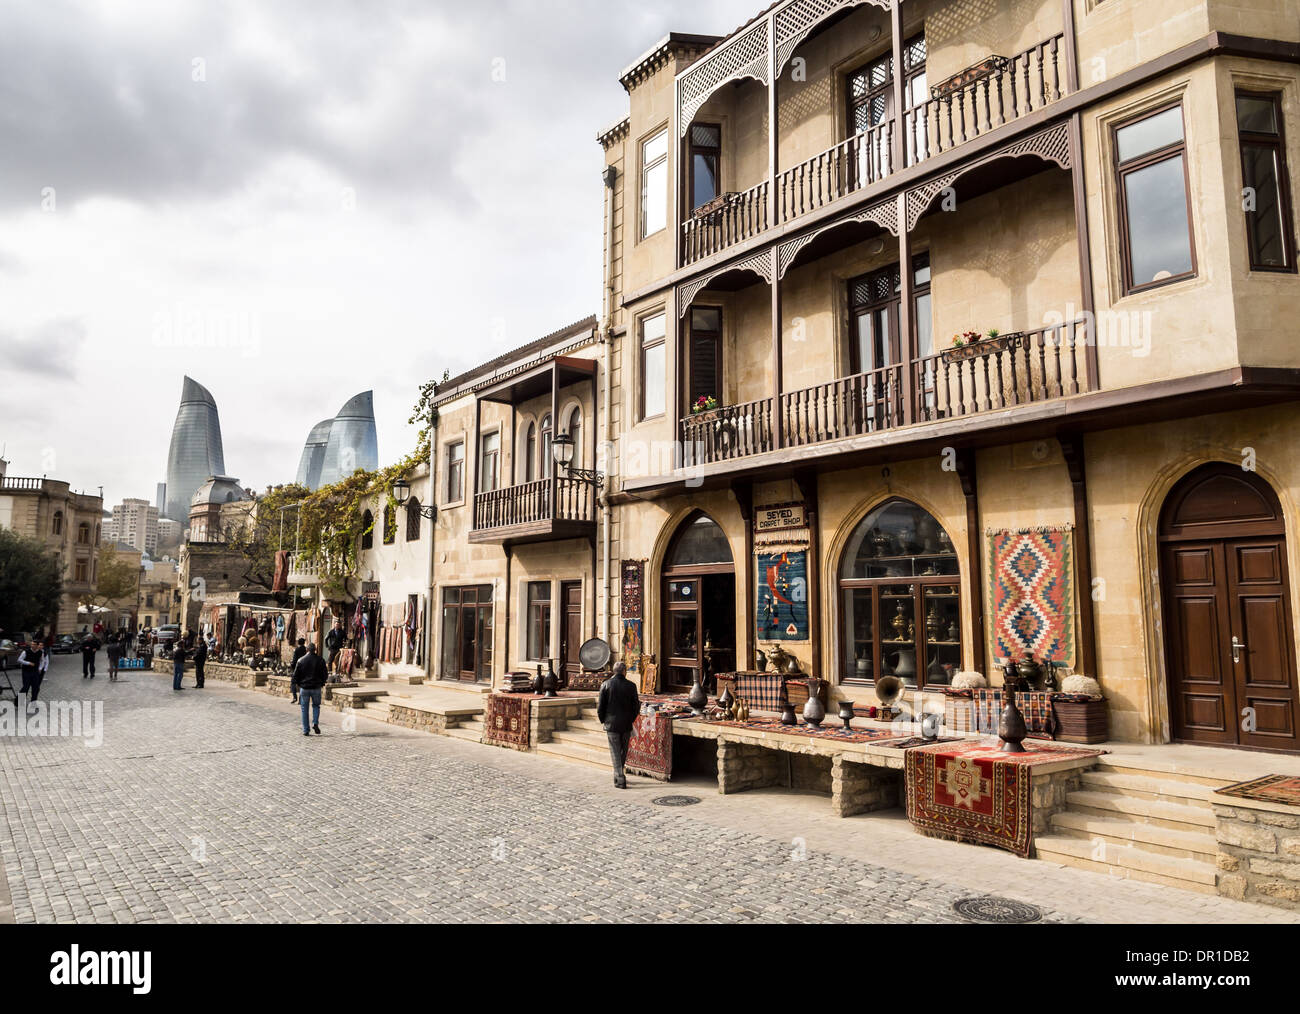 The Old Town (Icheri Sheher) of Baku, Azerbaijan. Flame Towers in the background. - Stock Image